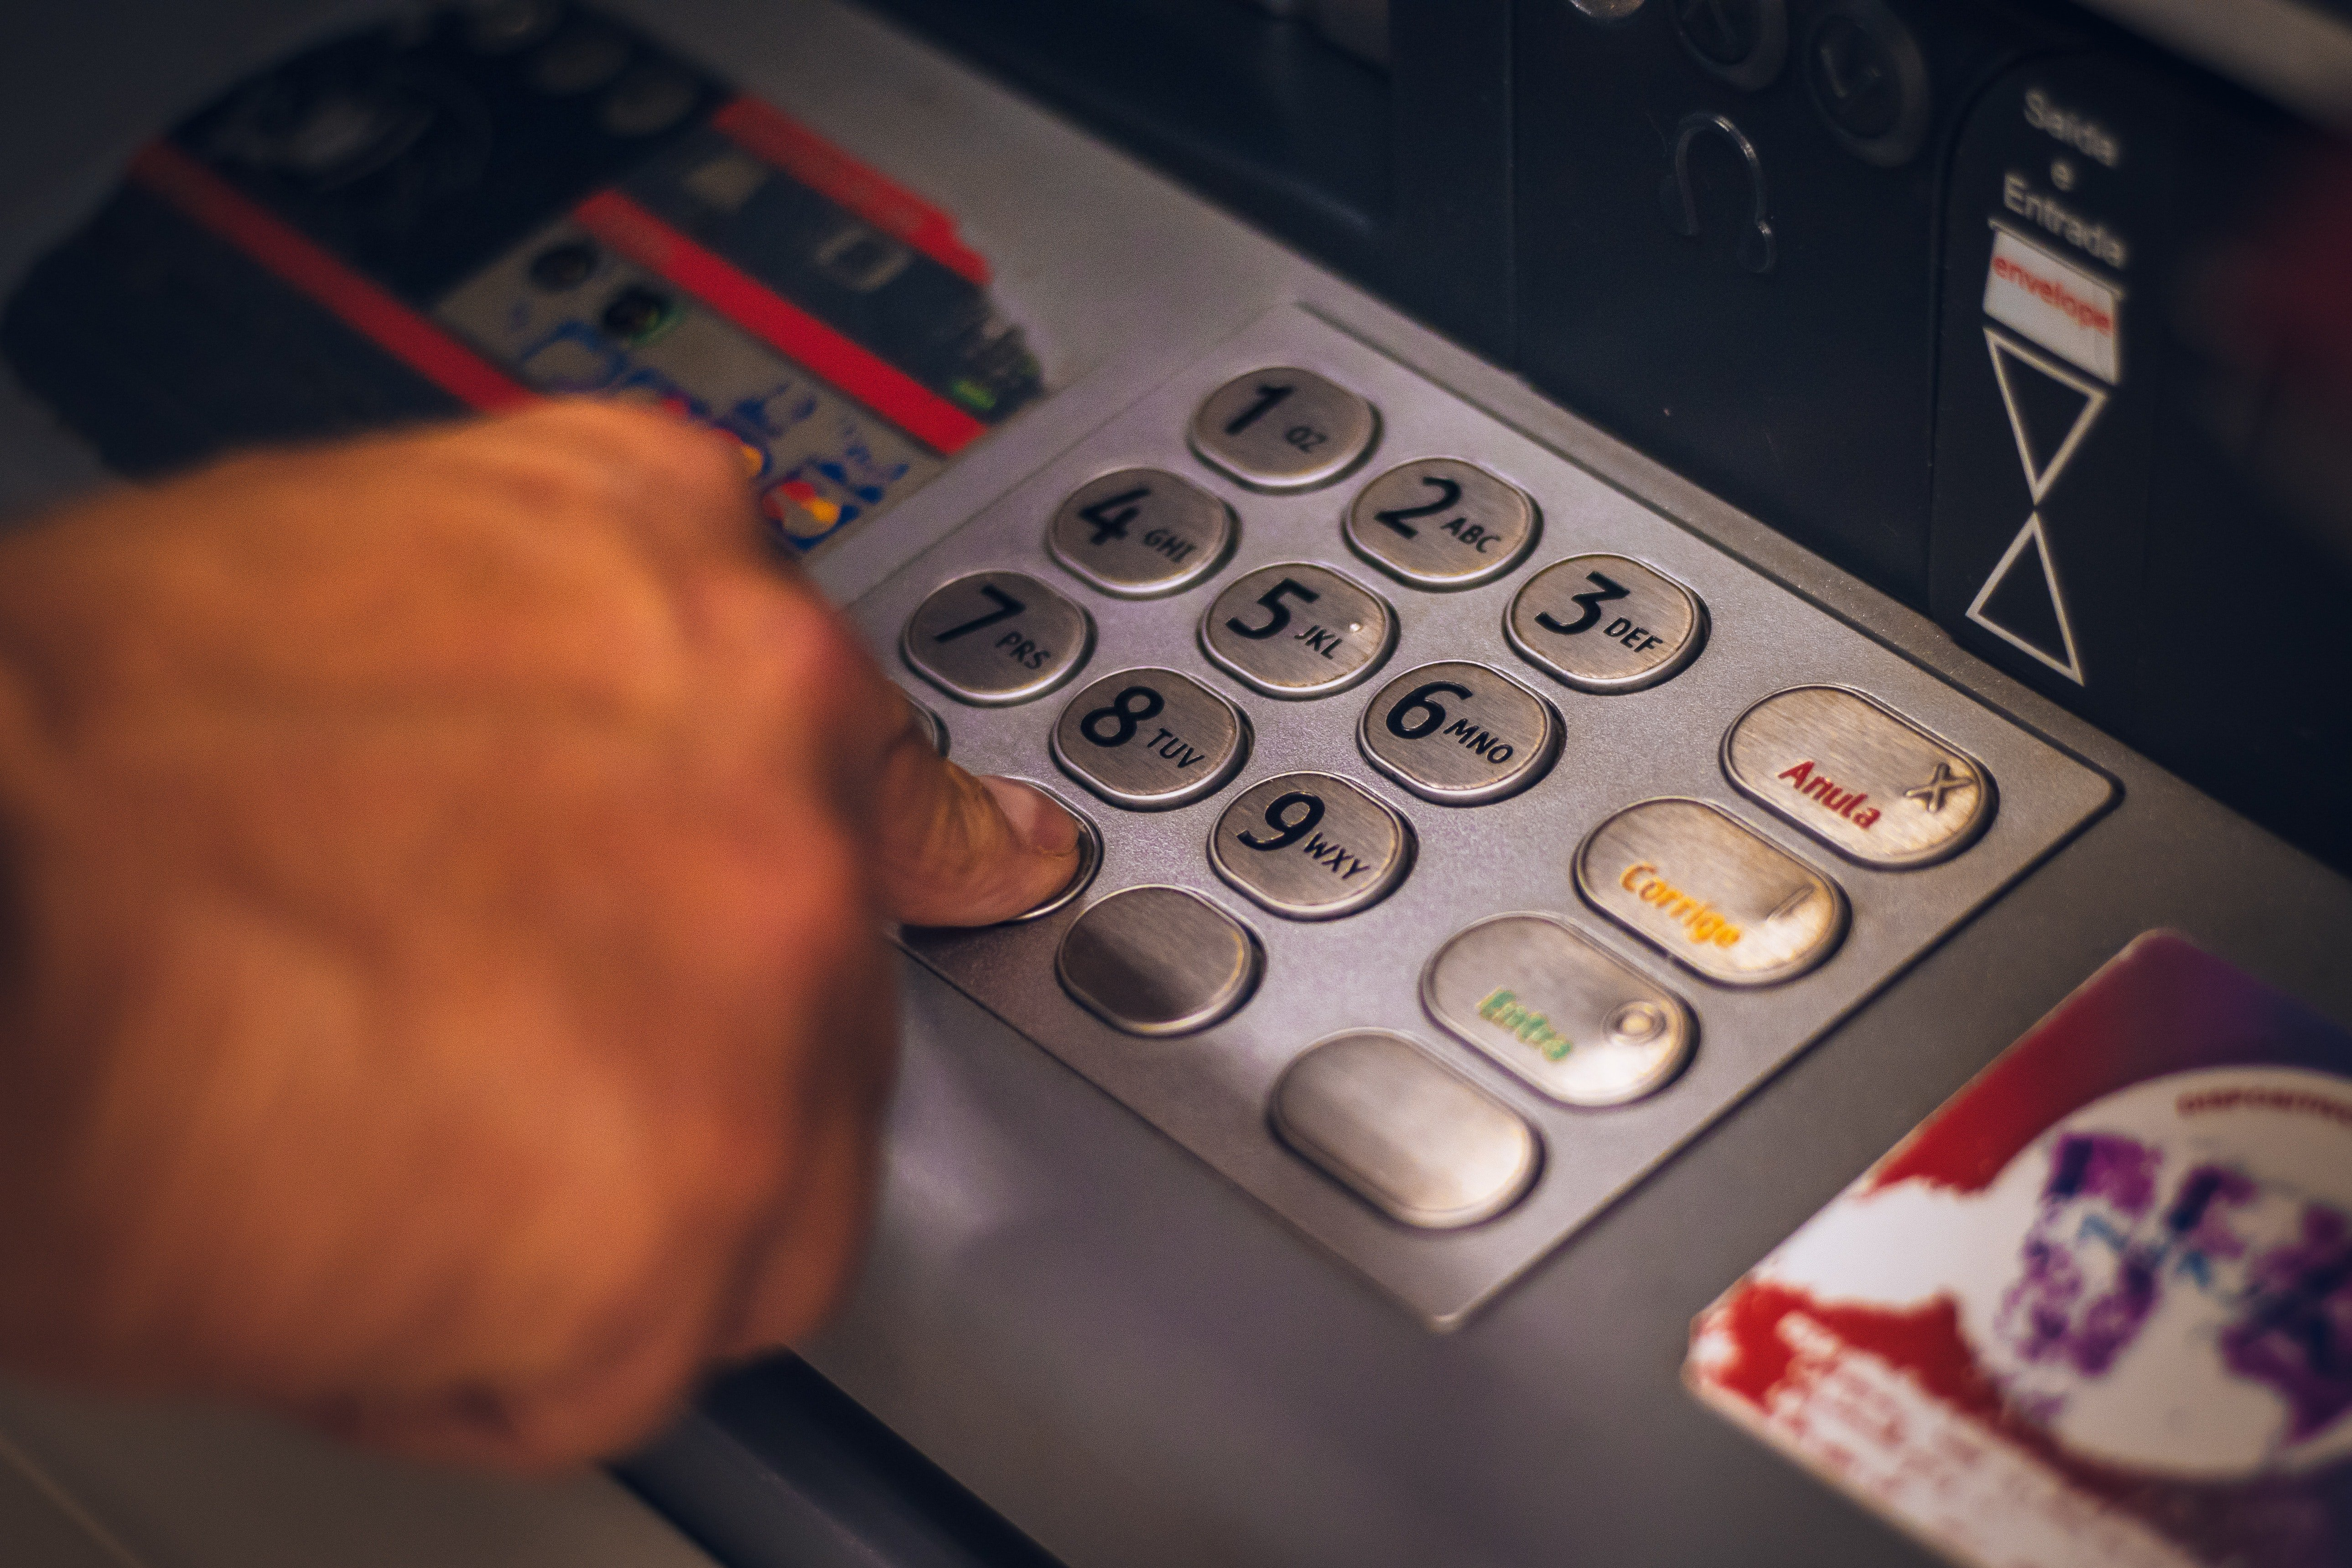 A customer withdrawing money at an ATM   Source: Pexels